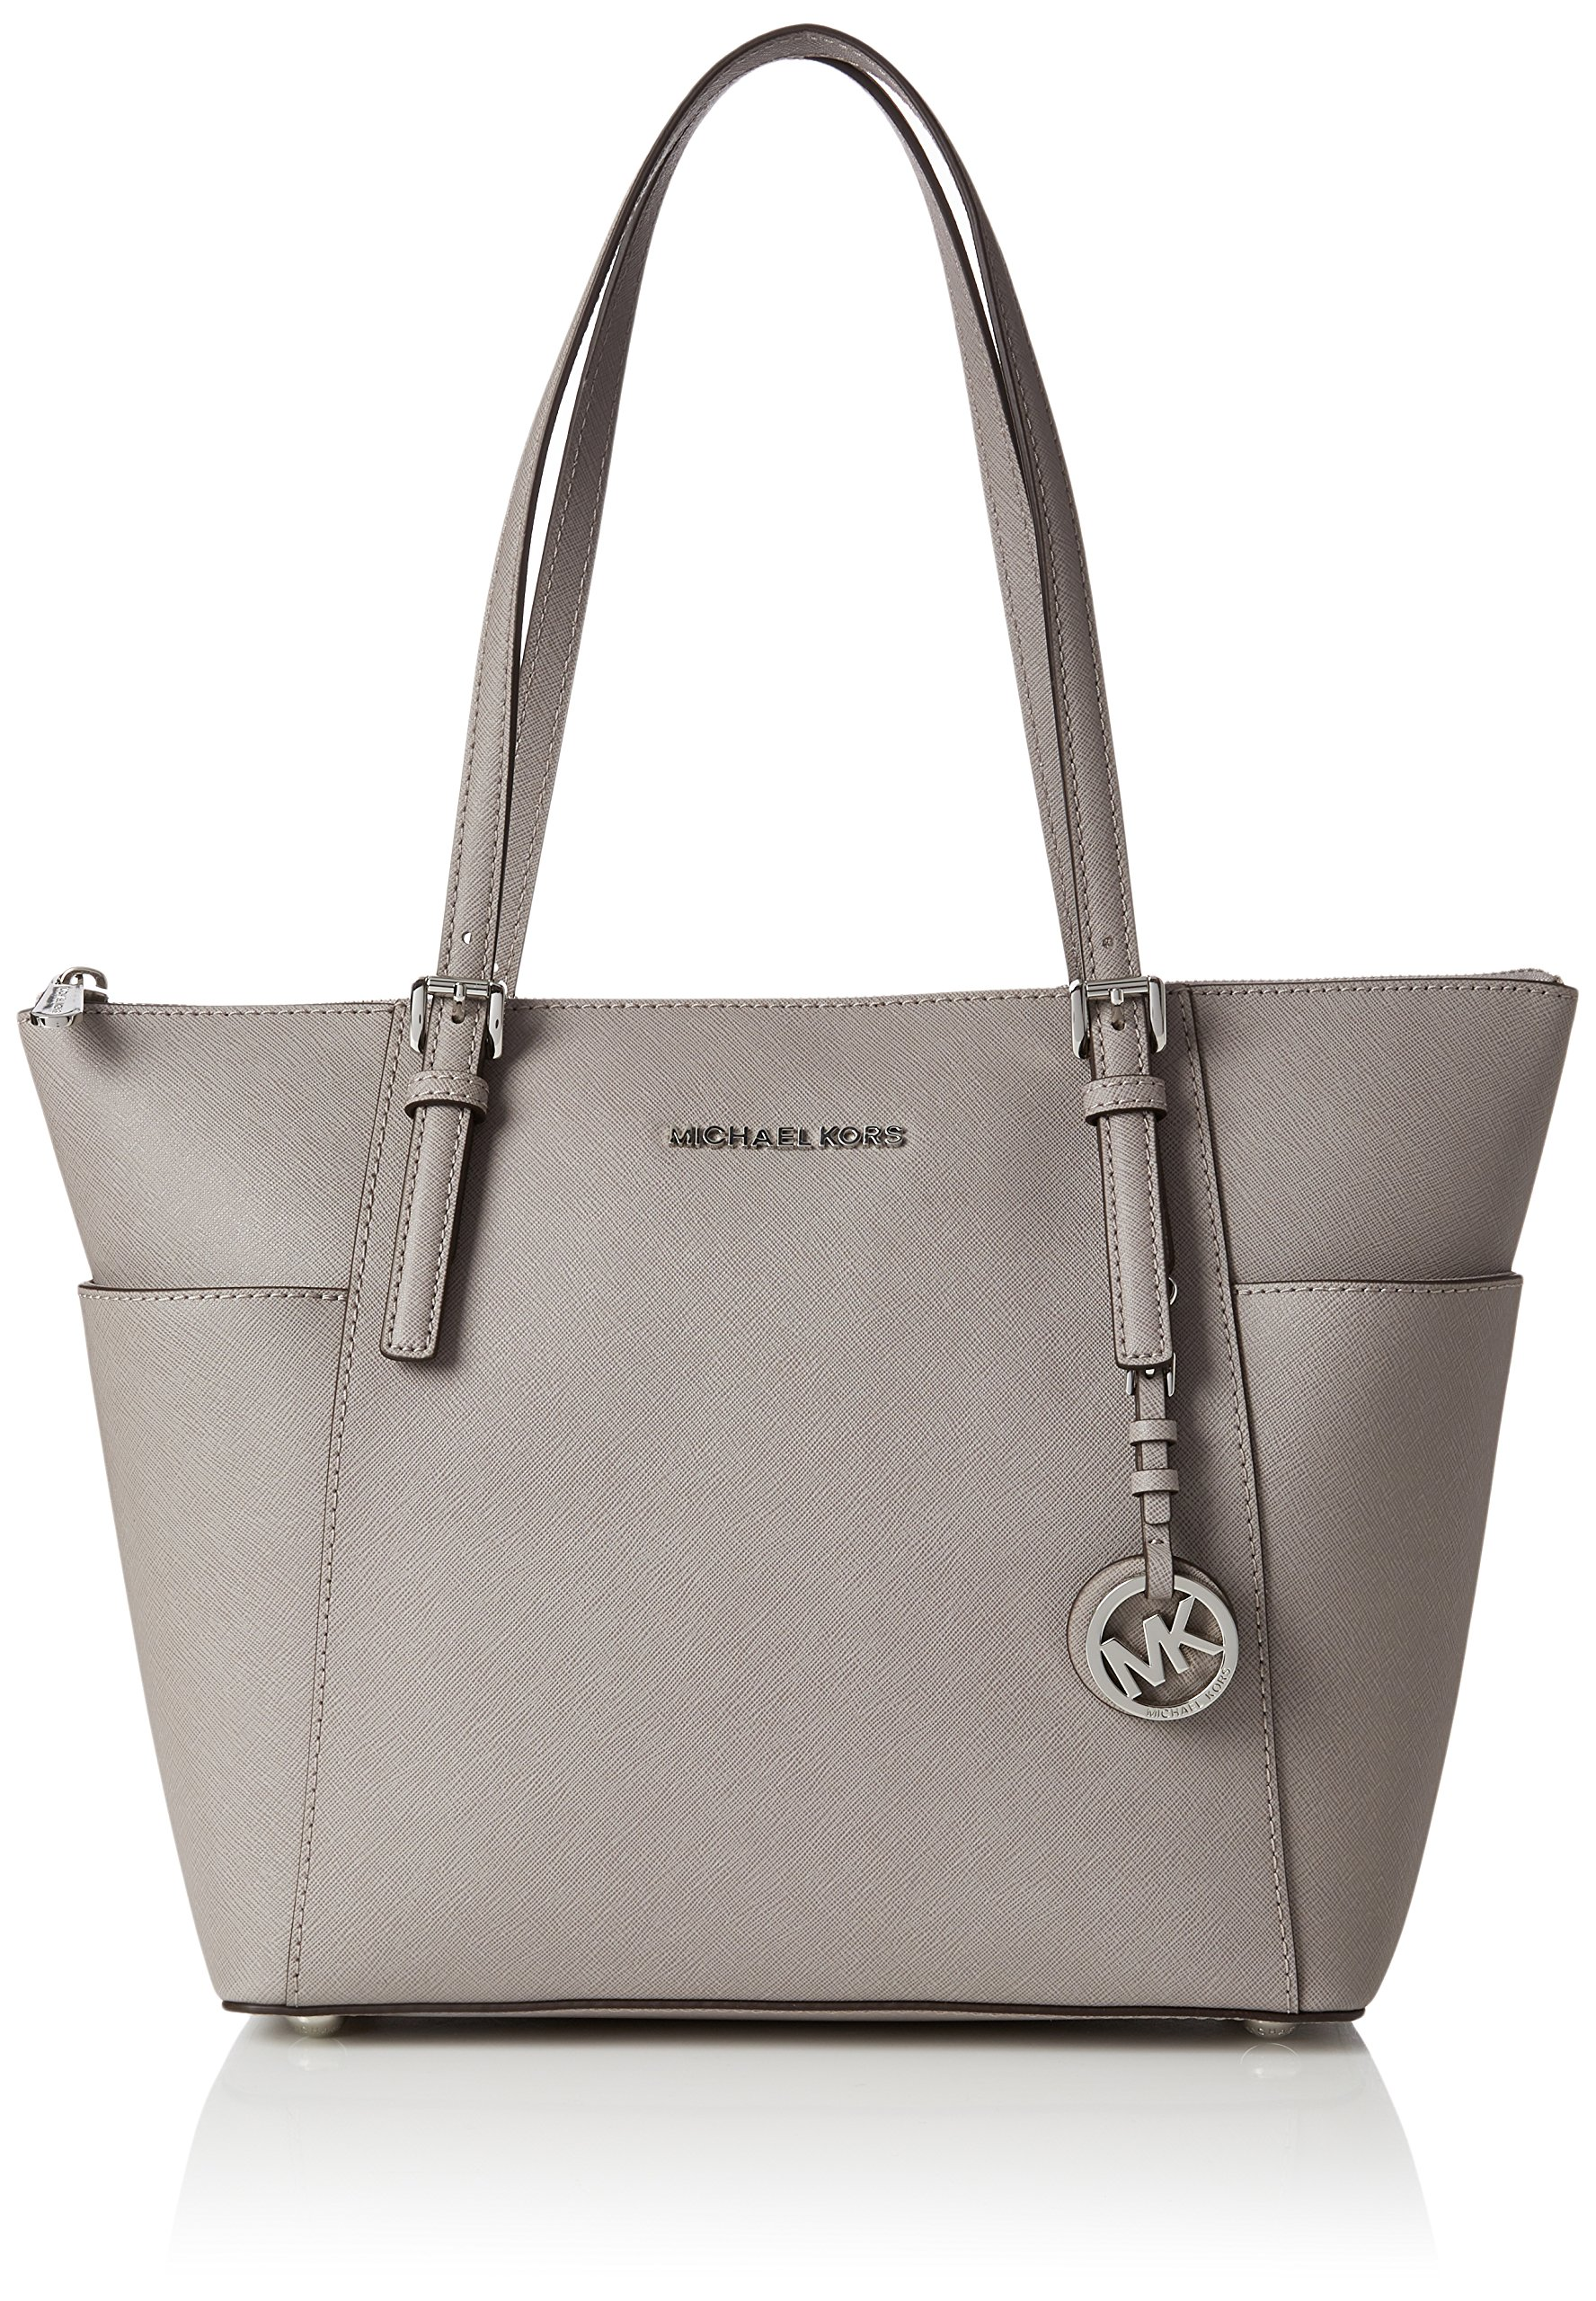 michael kors handbags grey amazon com rh amazon com